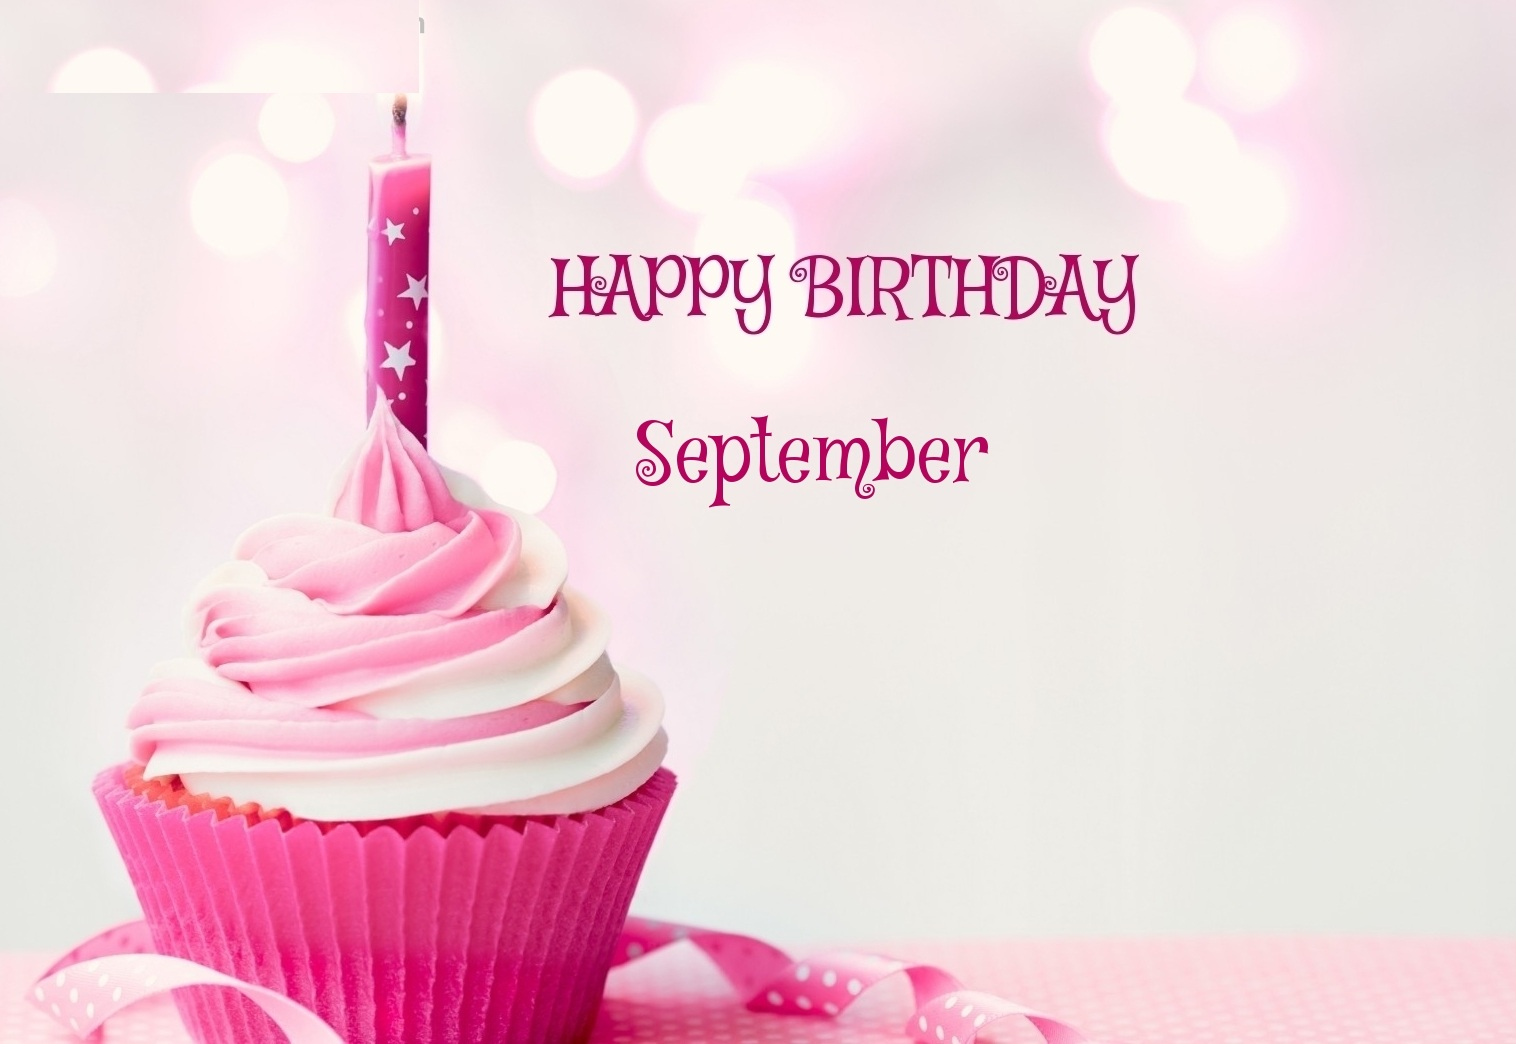 September Birthday Cup Cake Images, Quotes For Whatsapp